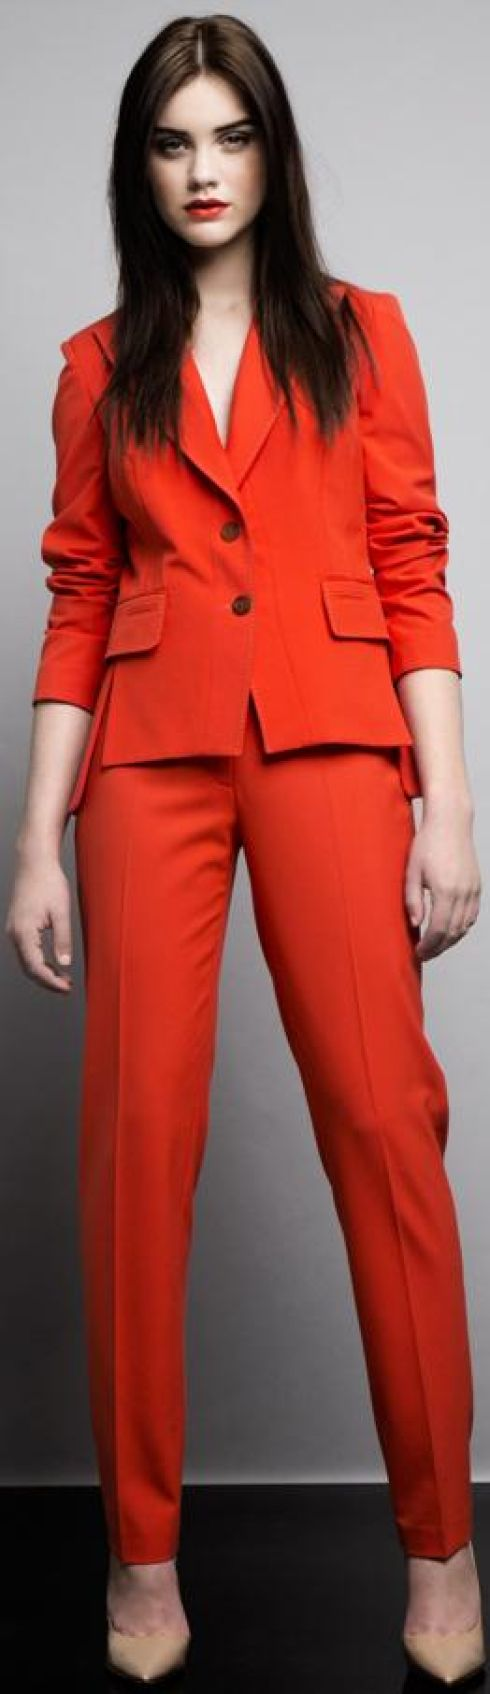 Orange tailored suit jacket, e259, trousers, e129, Kurt Geiger courts, e245 from BT2. Photograph: Ba